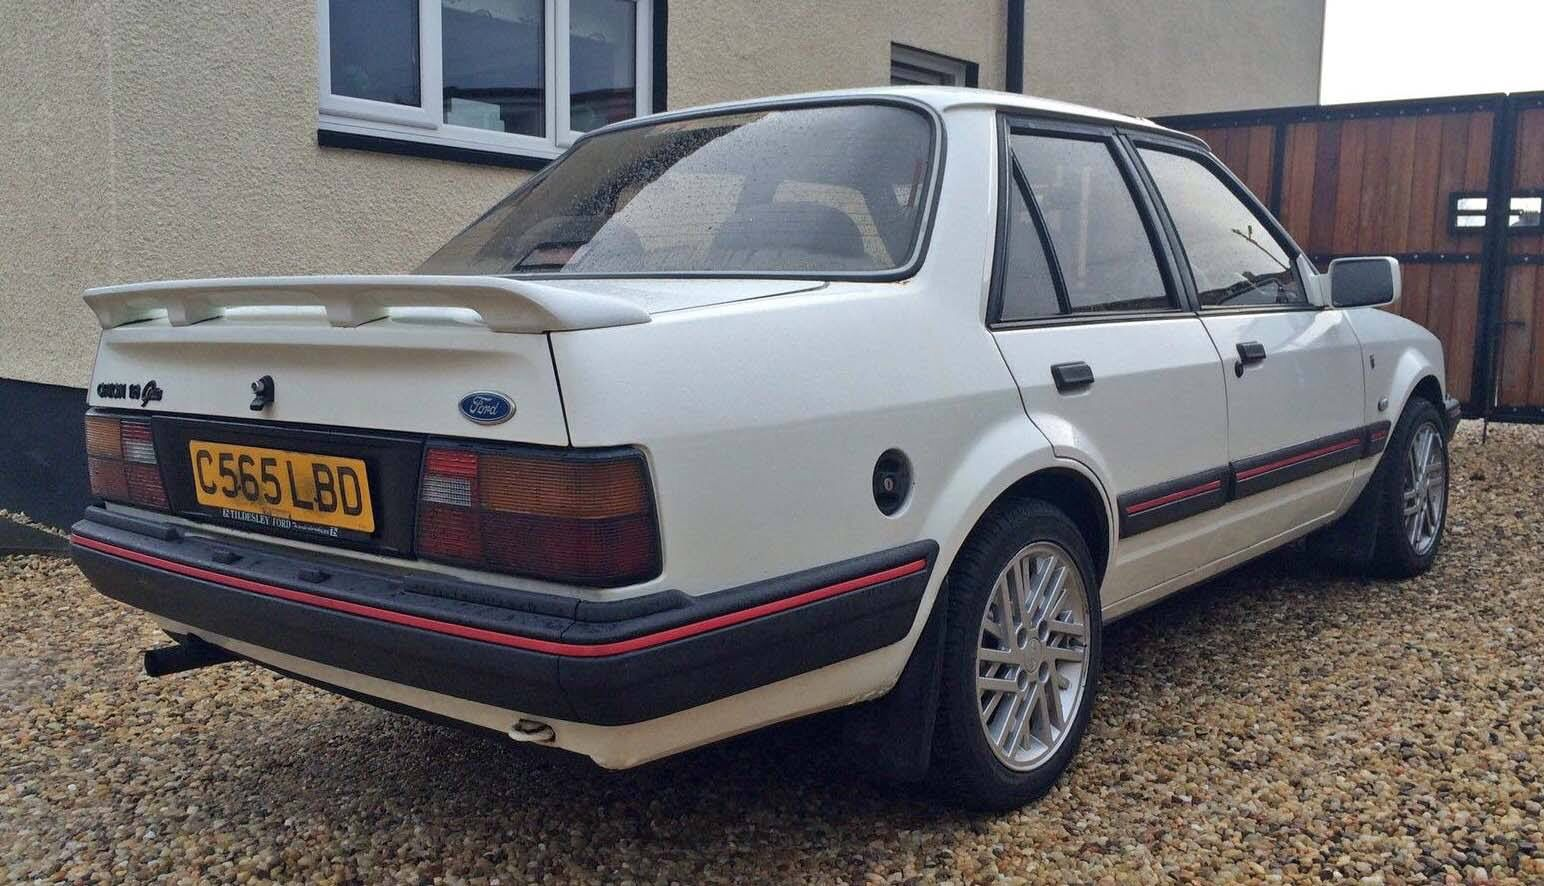 Ford Orion Ghia Ford Orion Car Ford Orion